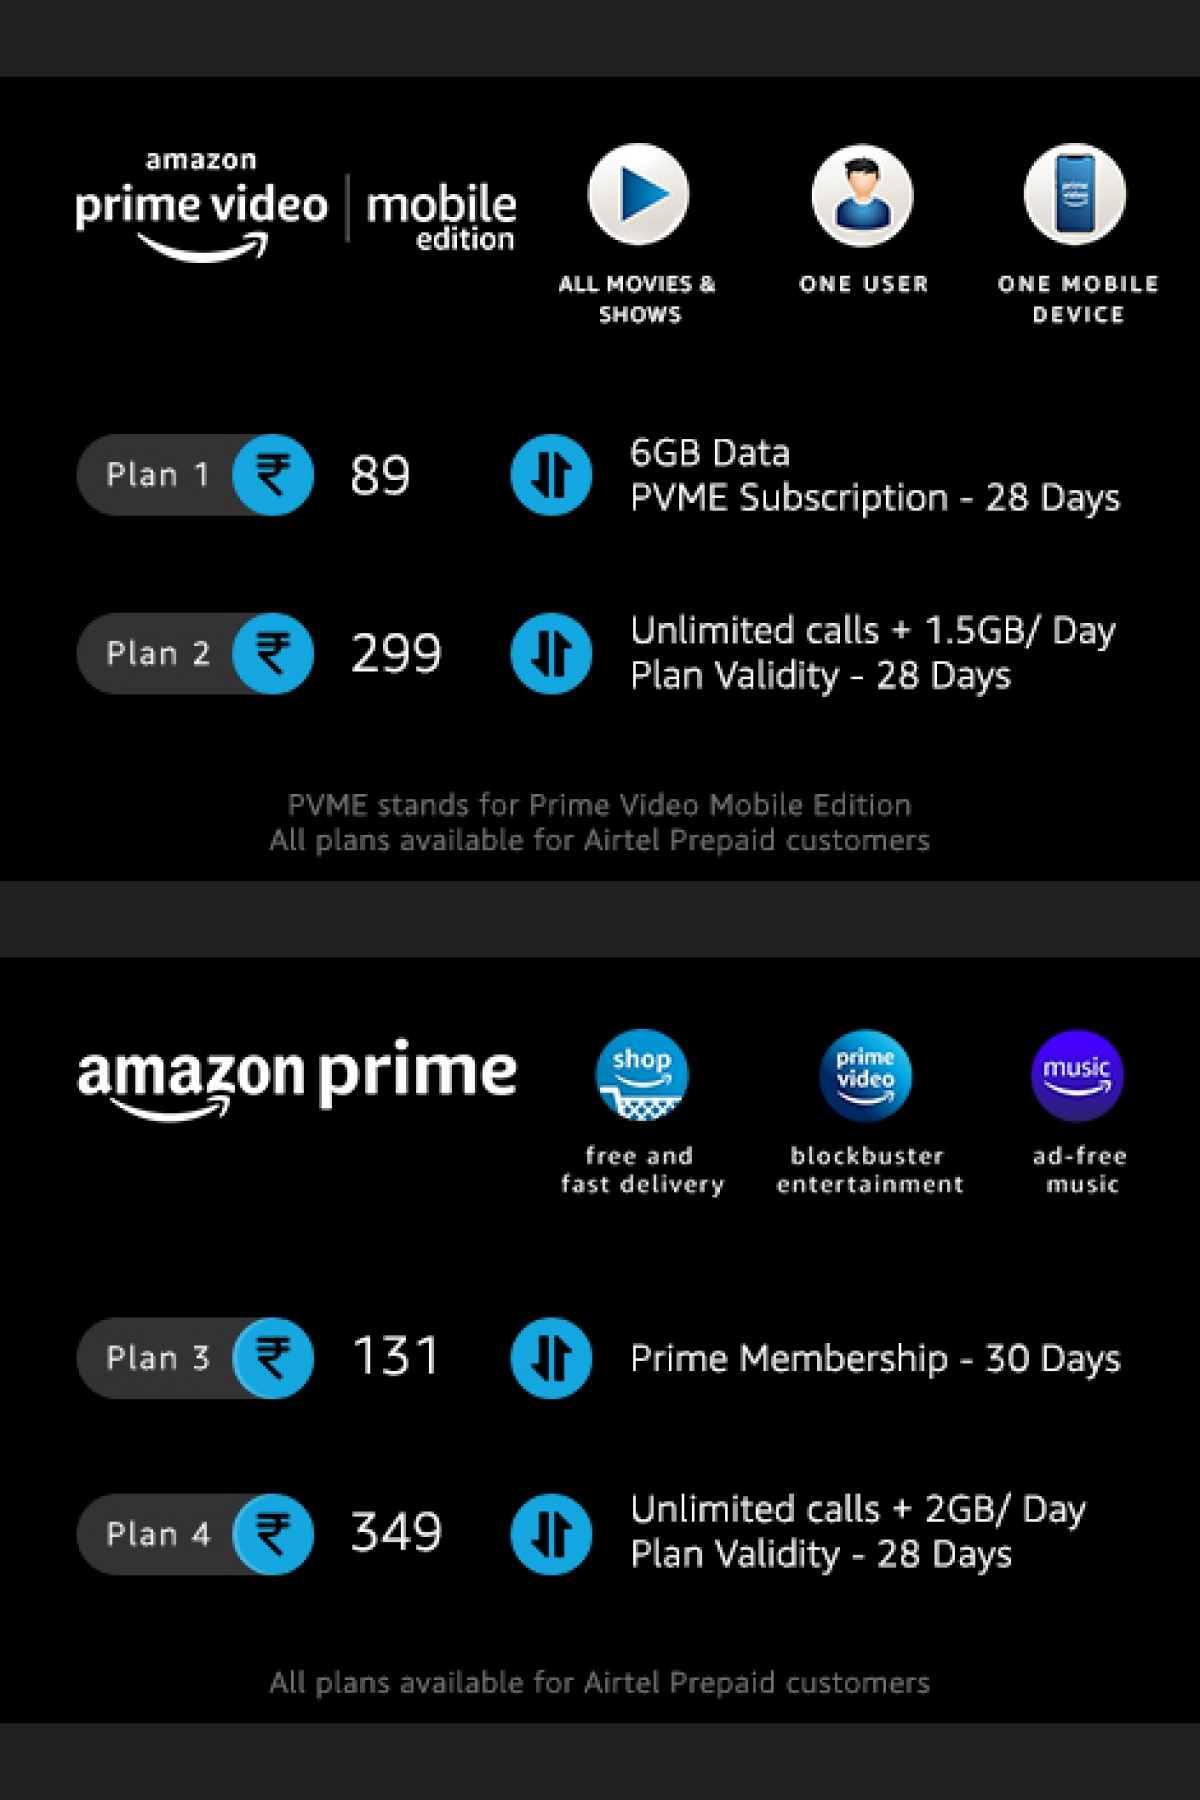 Amazon collaborates with Airtel to launch a mobile-only plan for Prime Video